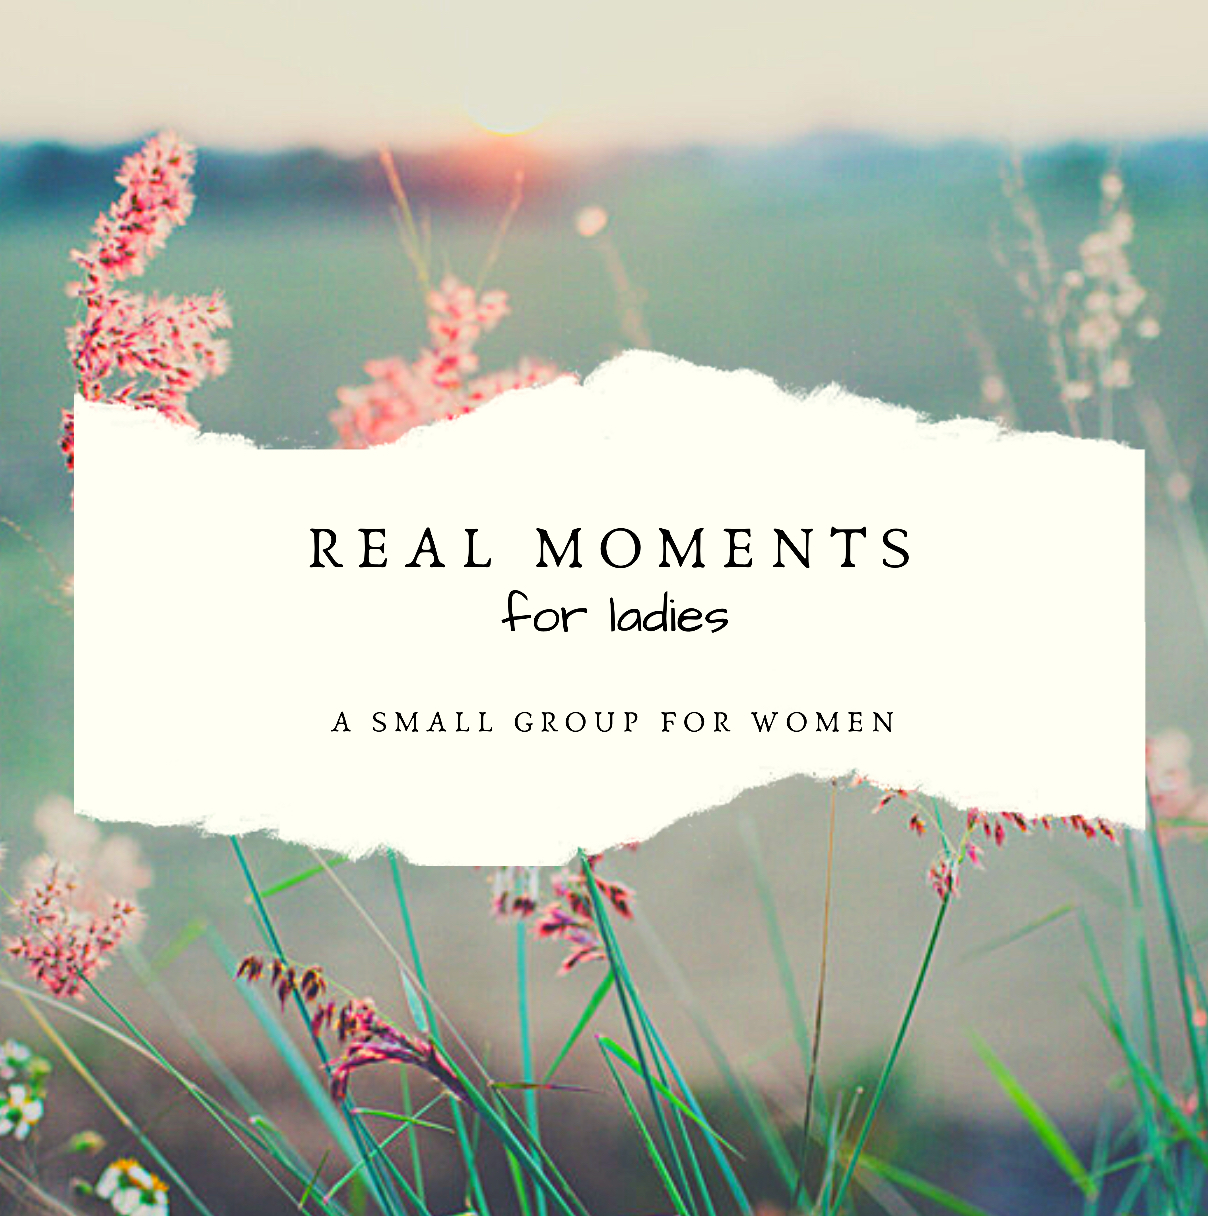 Real Moments is a Ladies small group lead by Nancy Diggs. At Real Moments, we are encouraged by The Word of God to be the women who Jesus created us to be! All women are invited to this time of fellowship.  Please bring a friend!